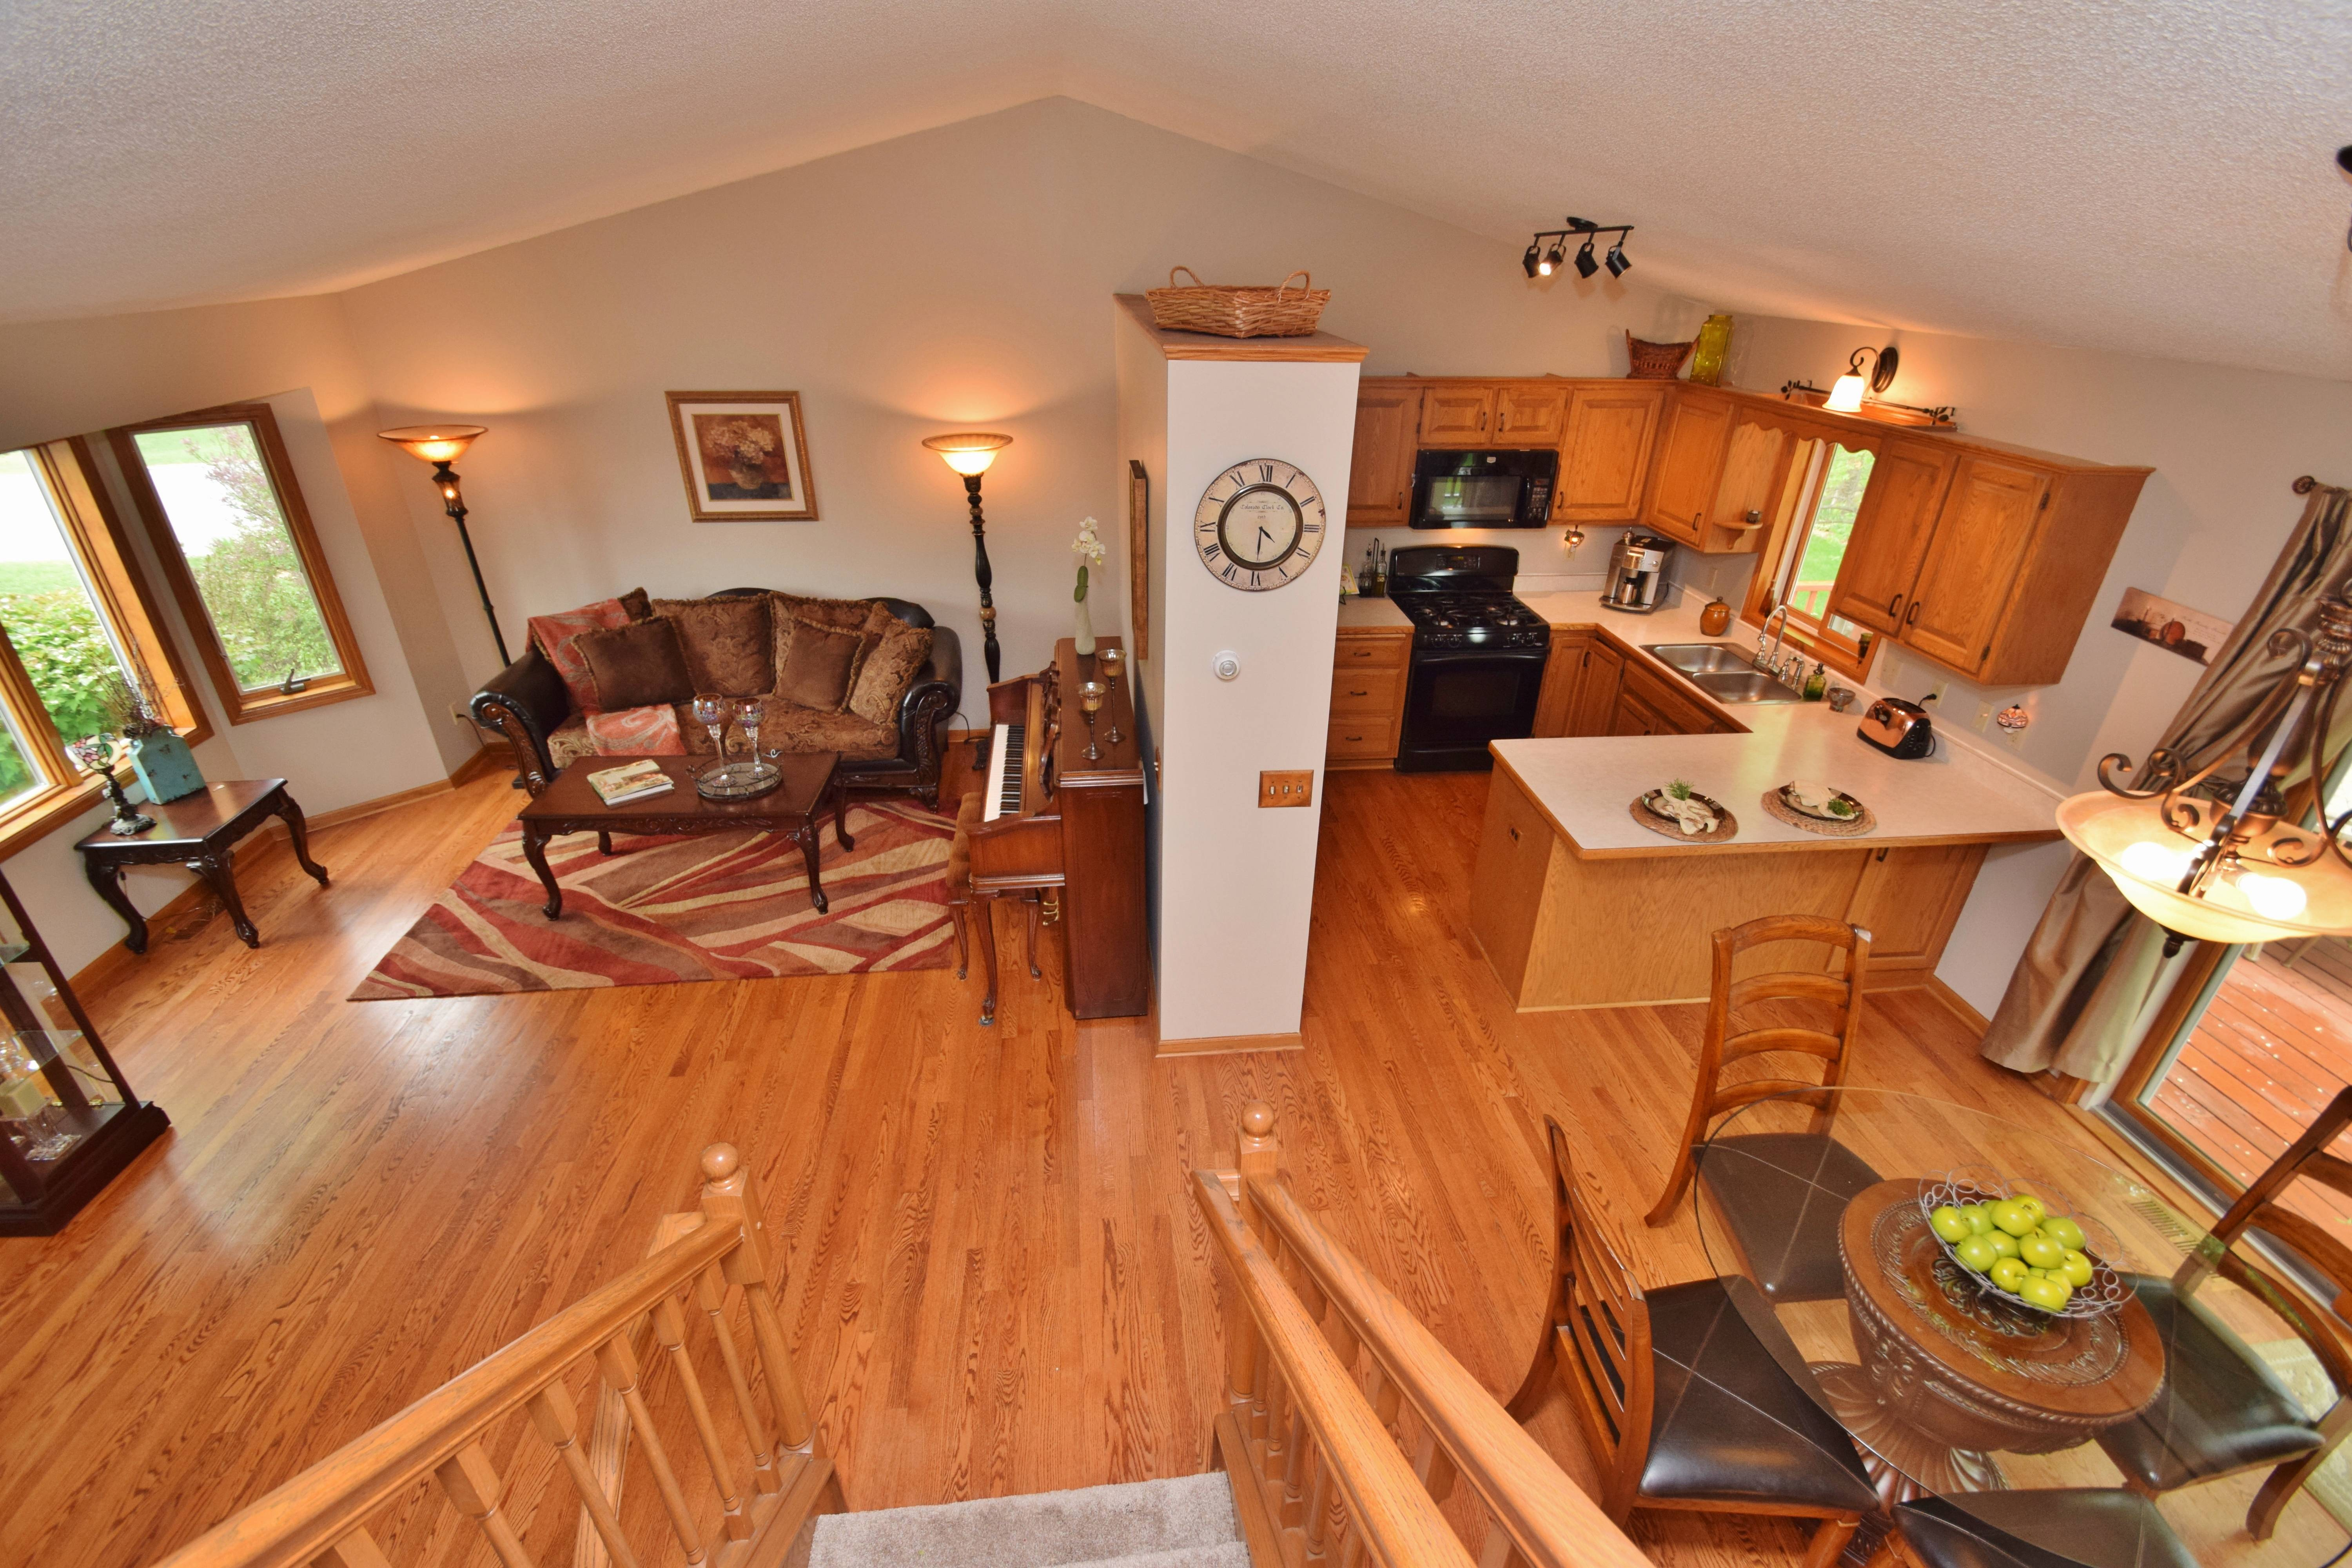 Entertain your friends in this awesome Ramsey home for sale